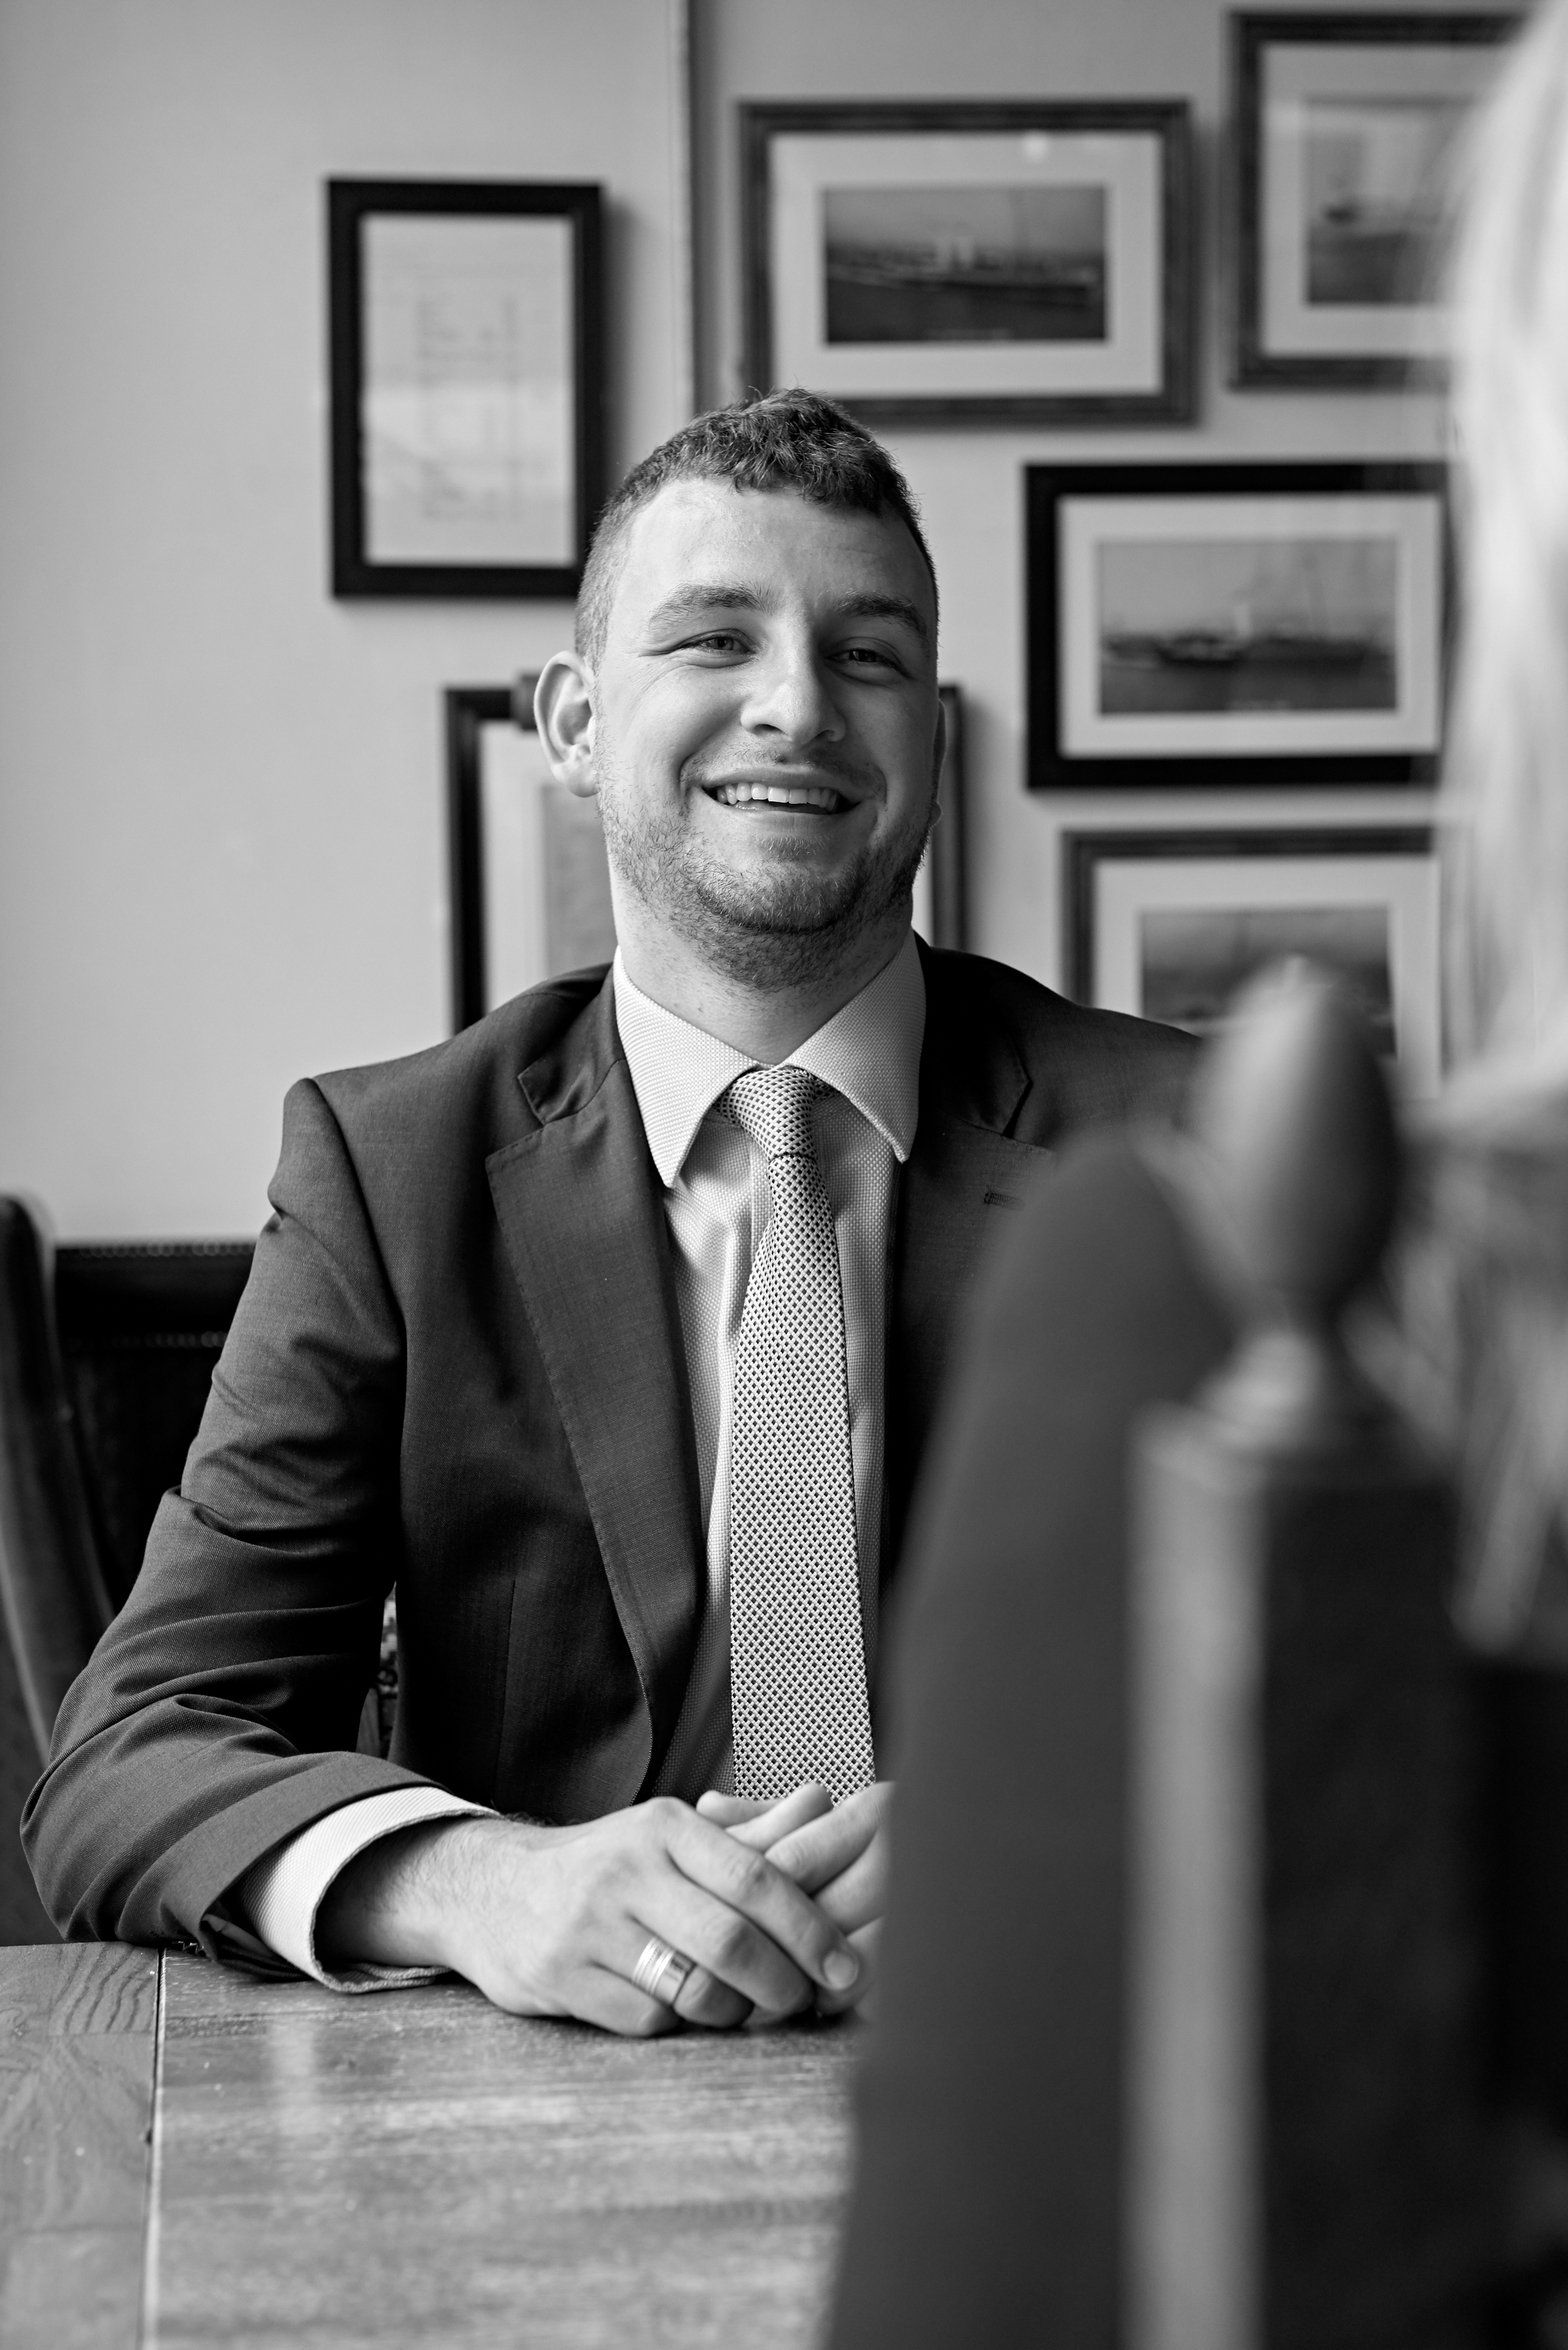 Andy Sawyer, Senior Sales Consultant